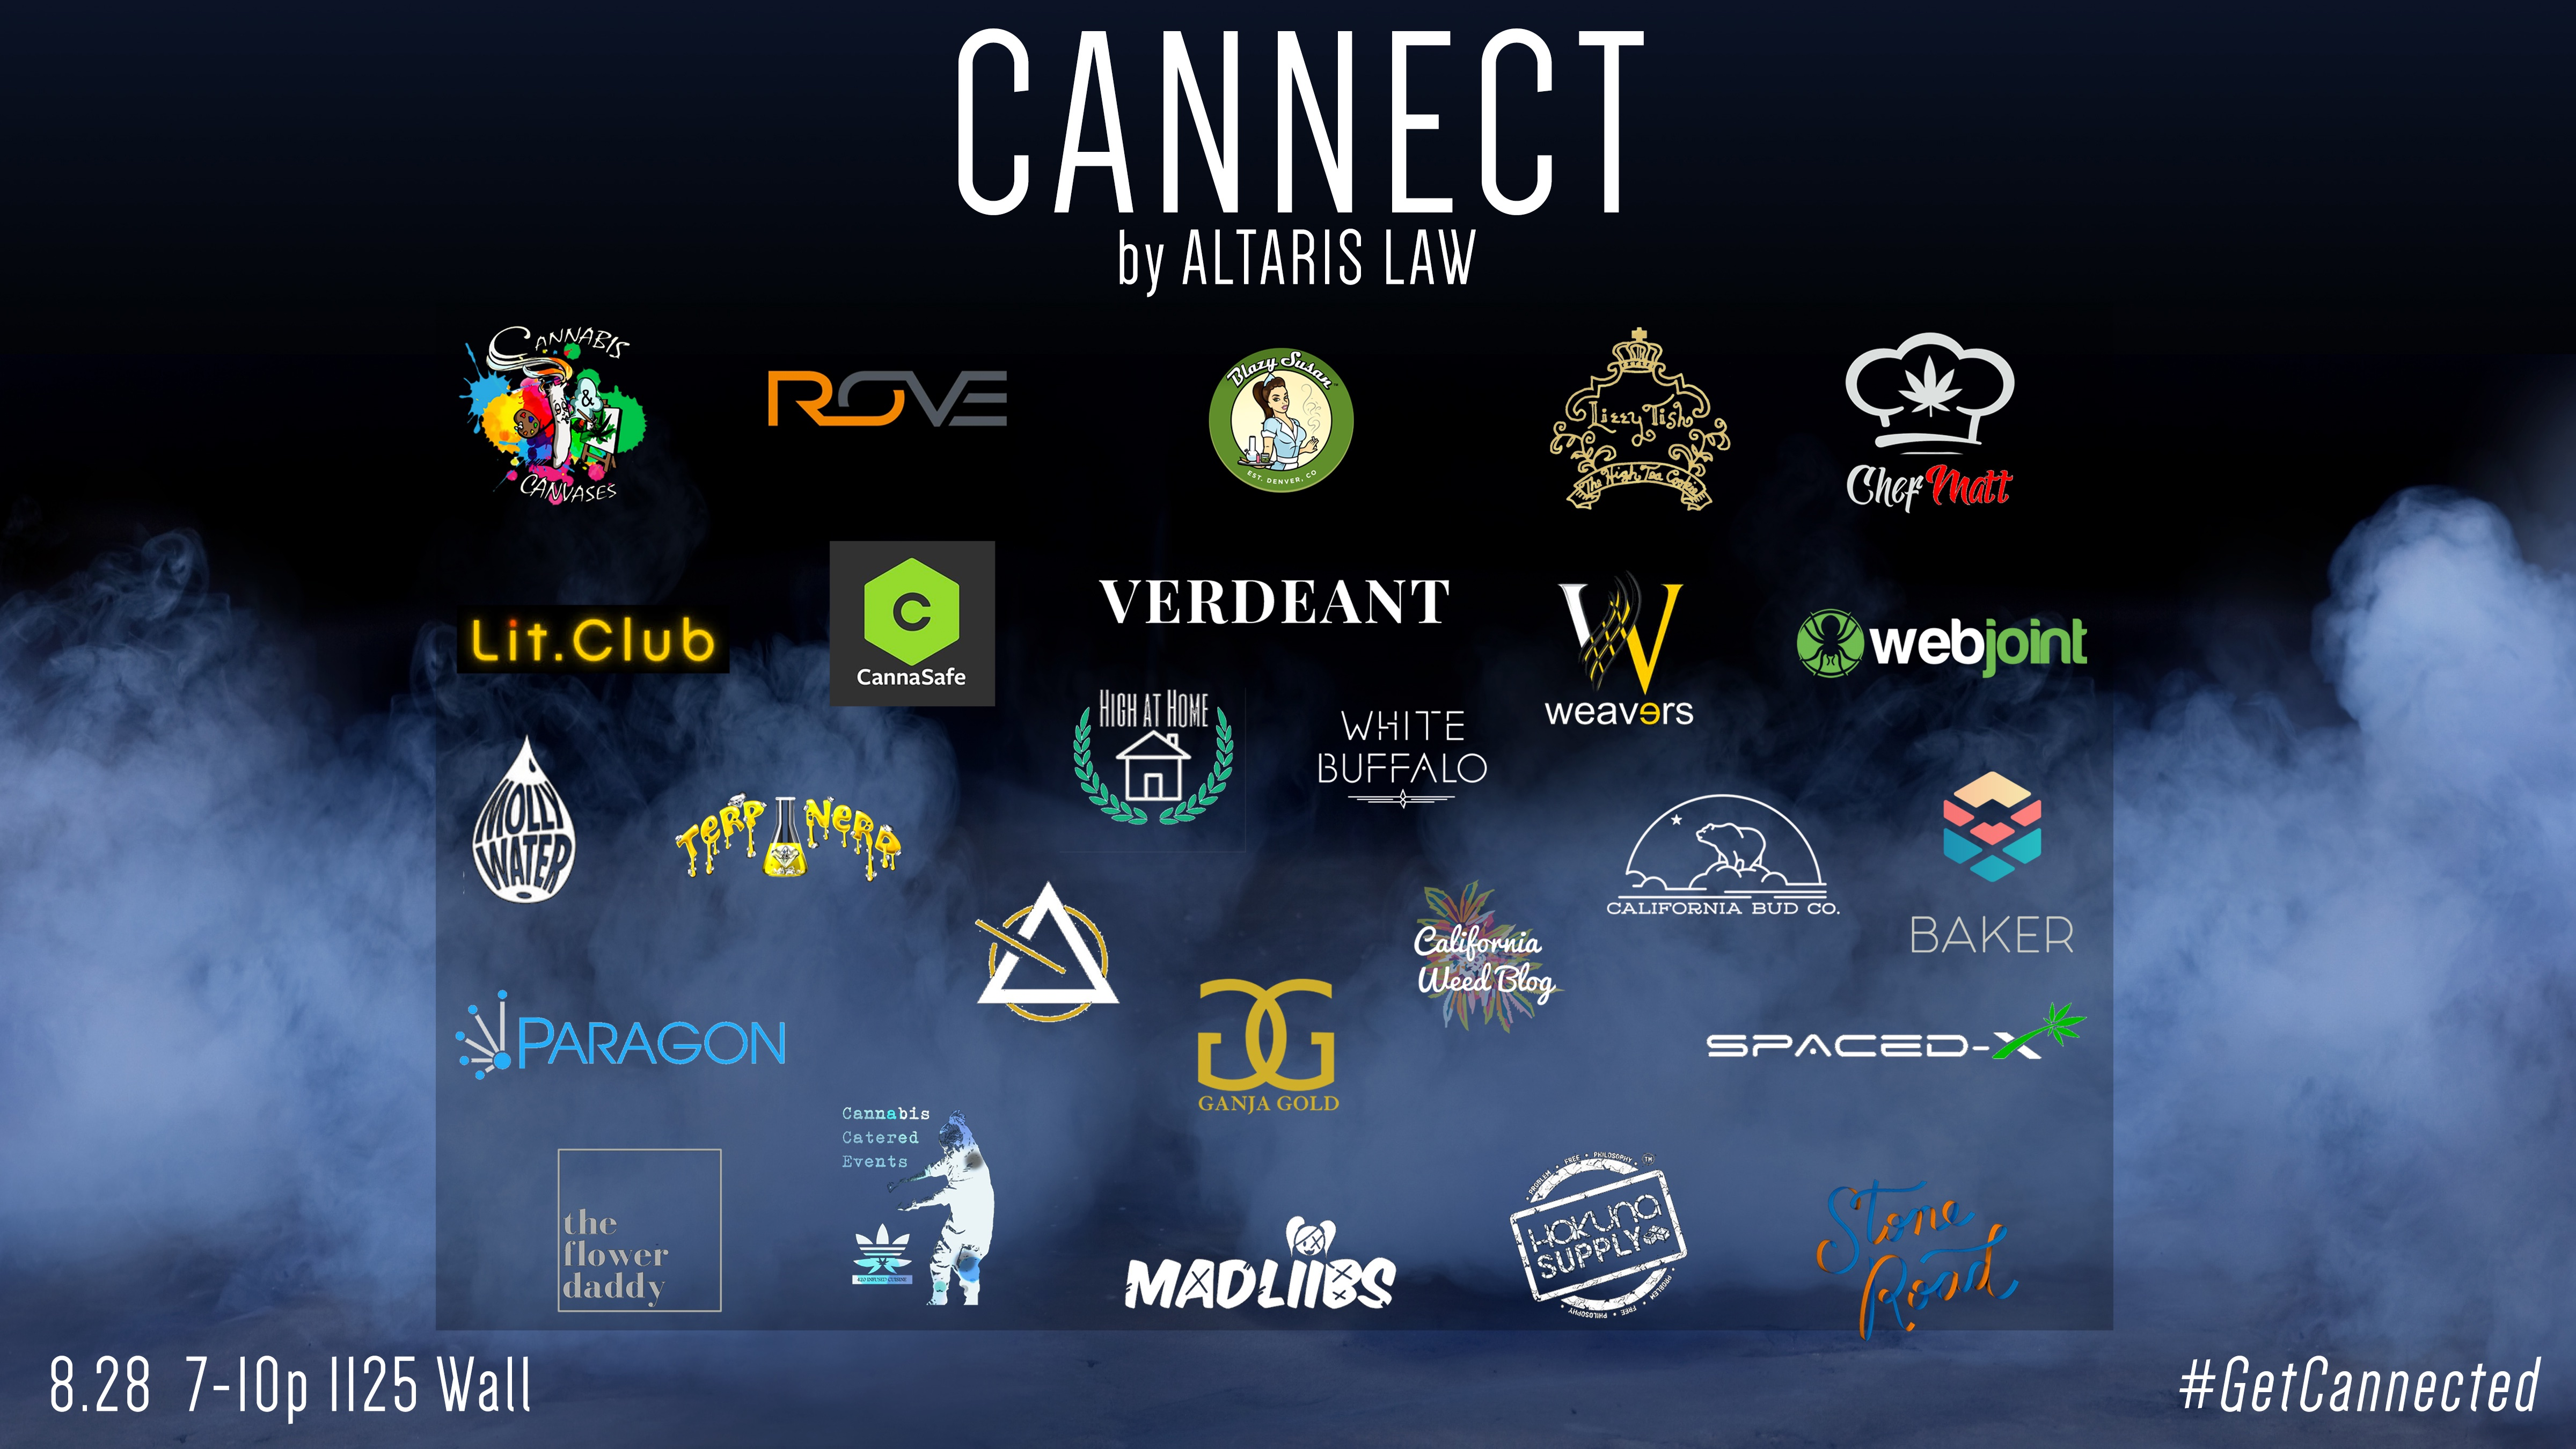 CANNECT Cannabis Networking Mixer